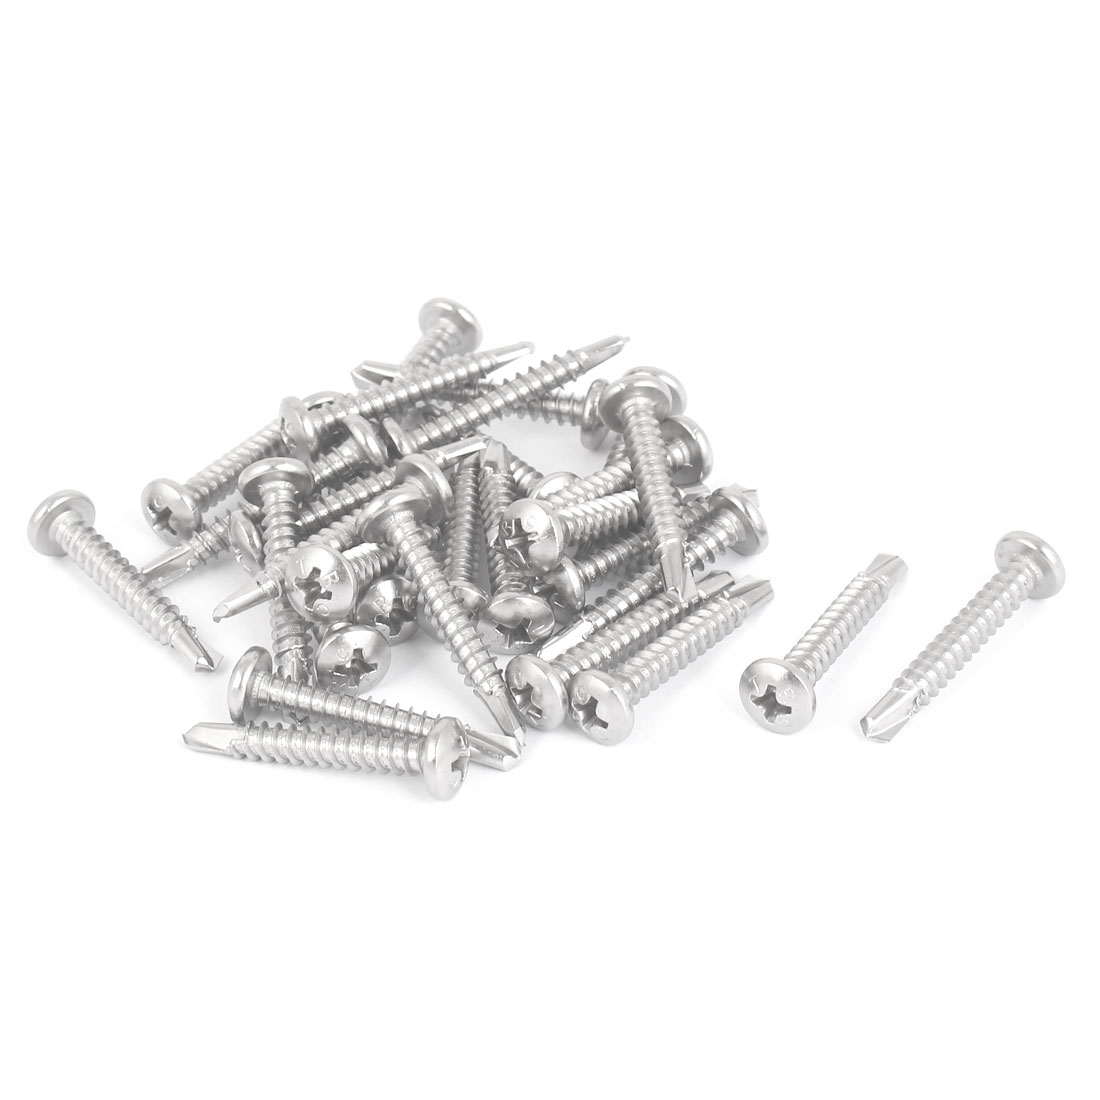 M4.8 x 32mm Thread Phillips Pan Head Self Drilling Tek Screws 30 Pcs